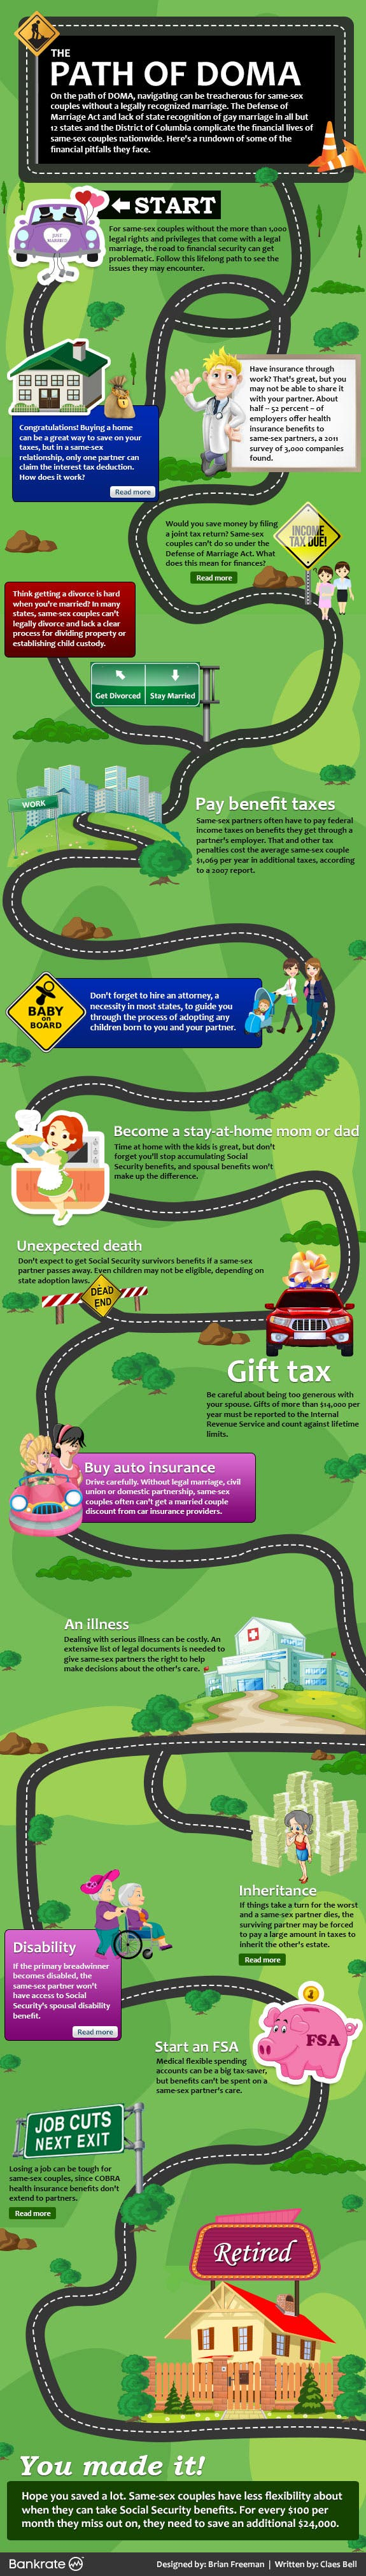 Path of DOMA infographic - Photo Credit(s) - Shutterstock